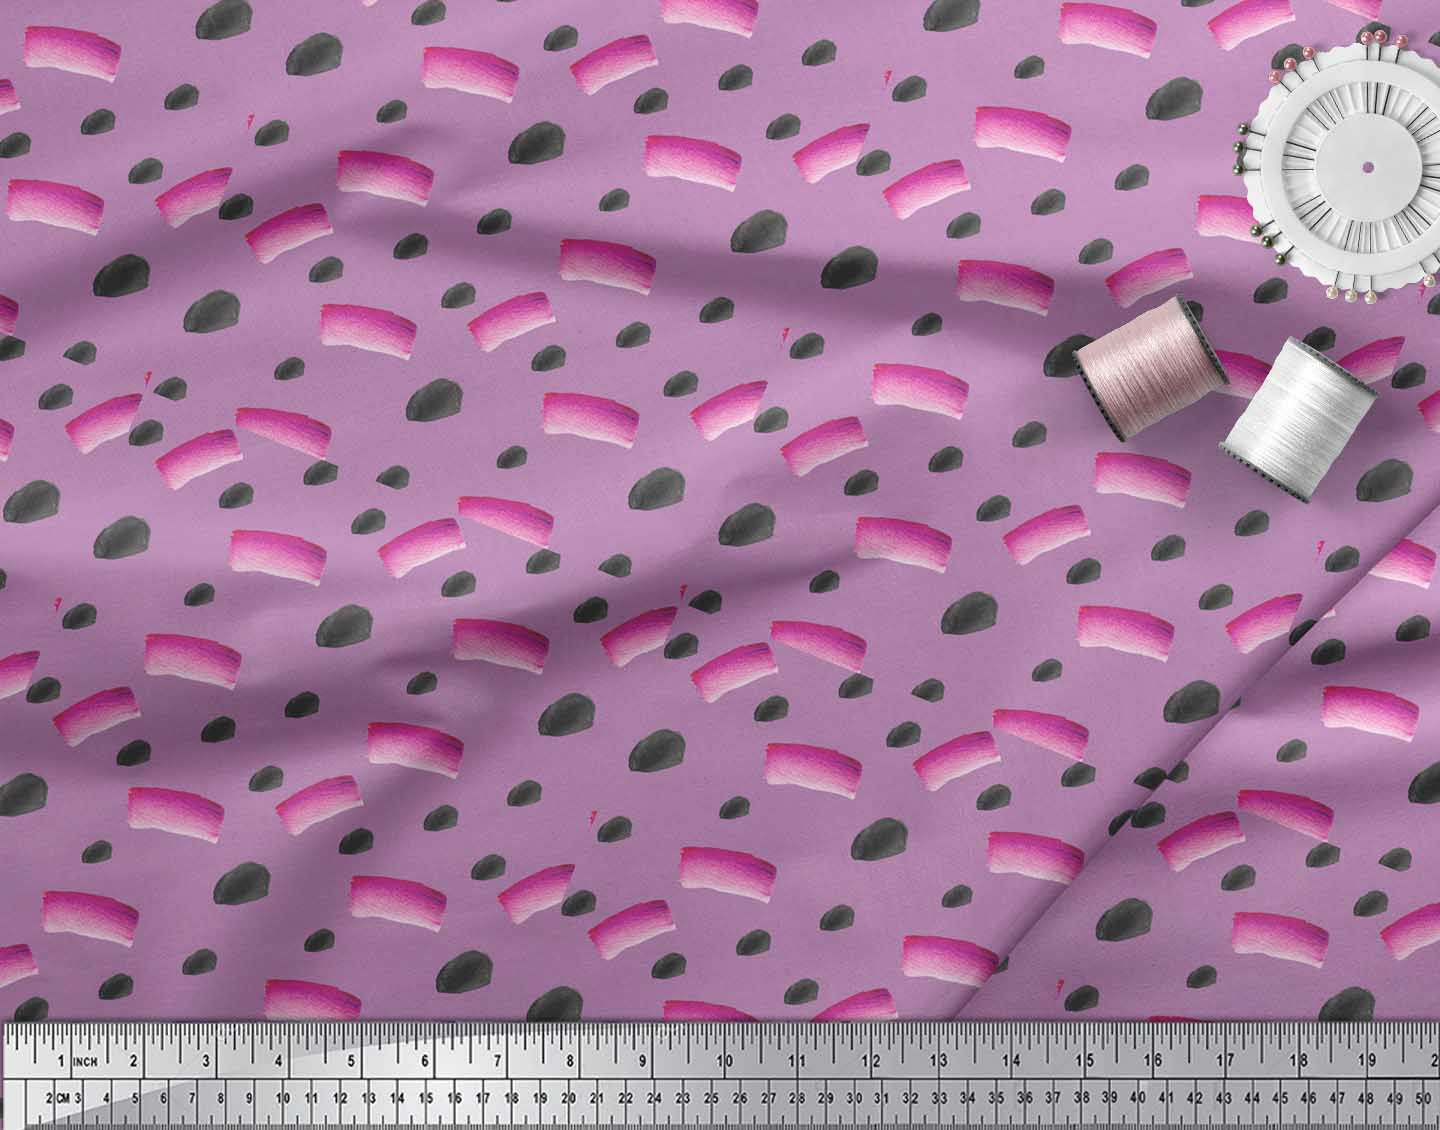 Soimoi-Purple-Cotton-Poplin-Fabric-Brush-Stroke-Abstract-Printed-0EY thumbnail 3